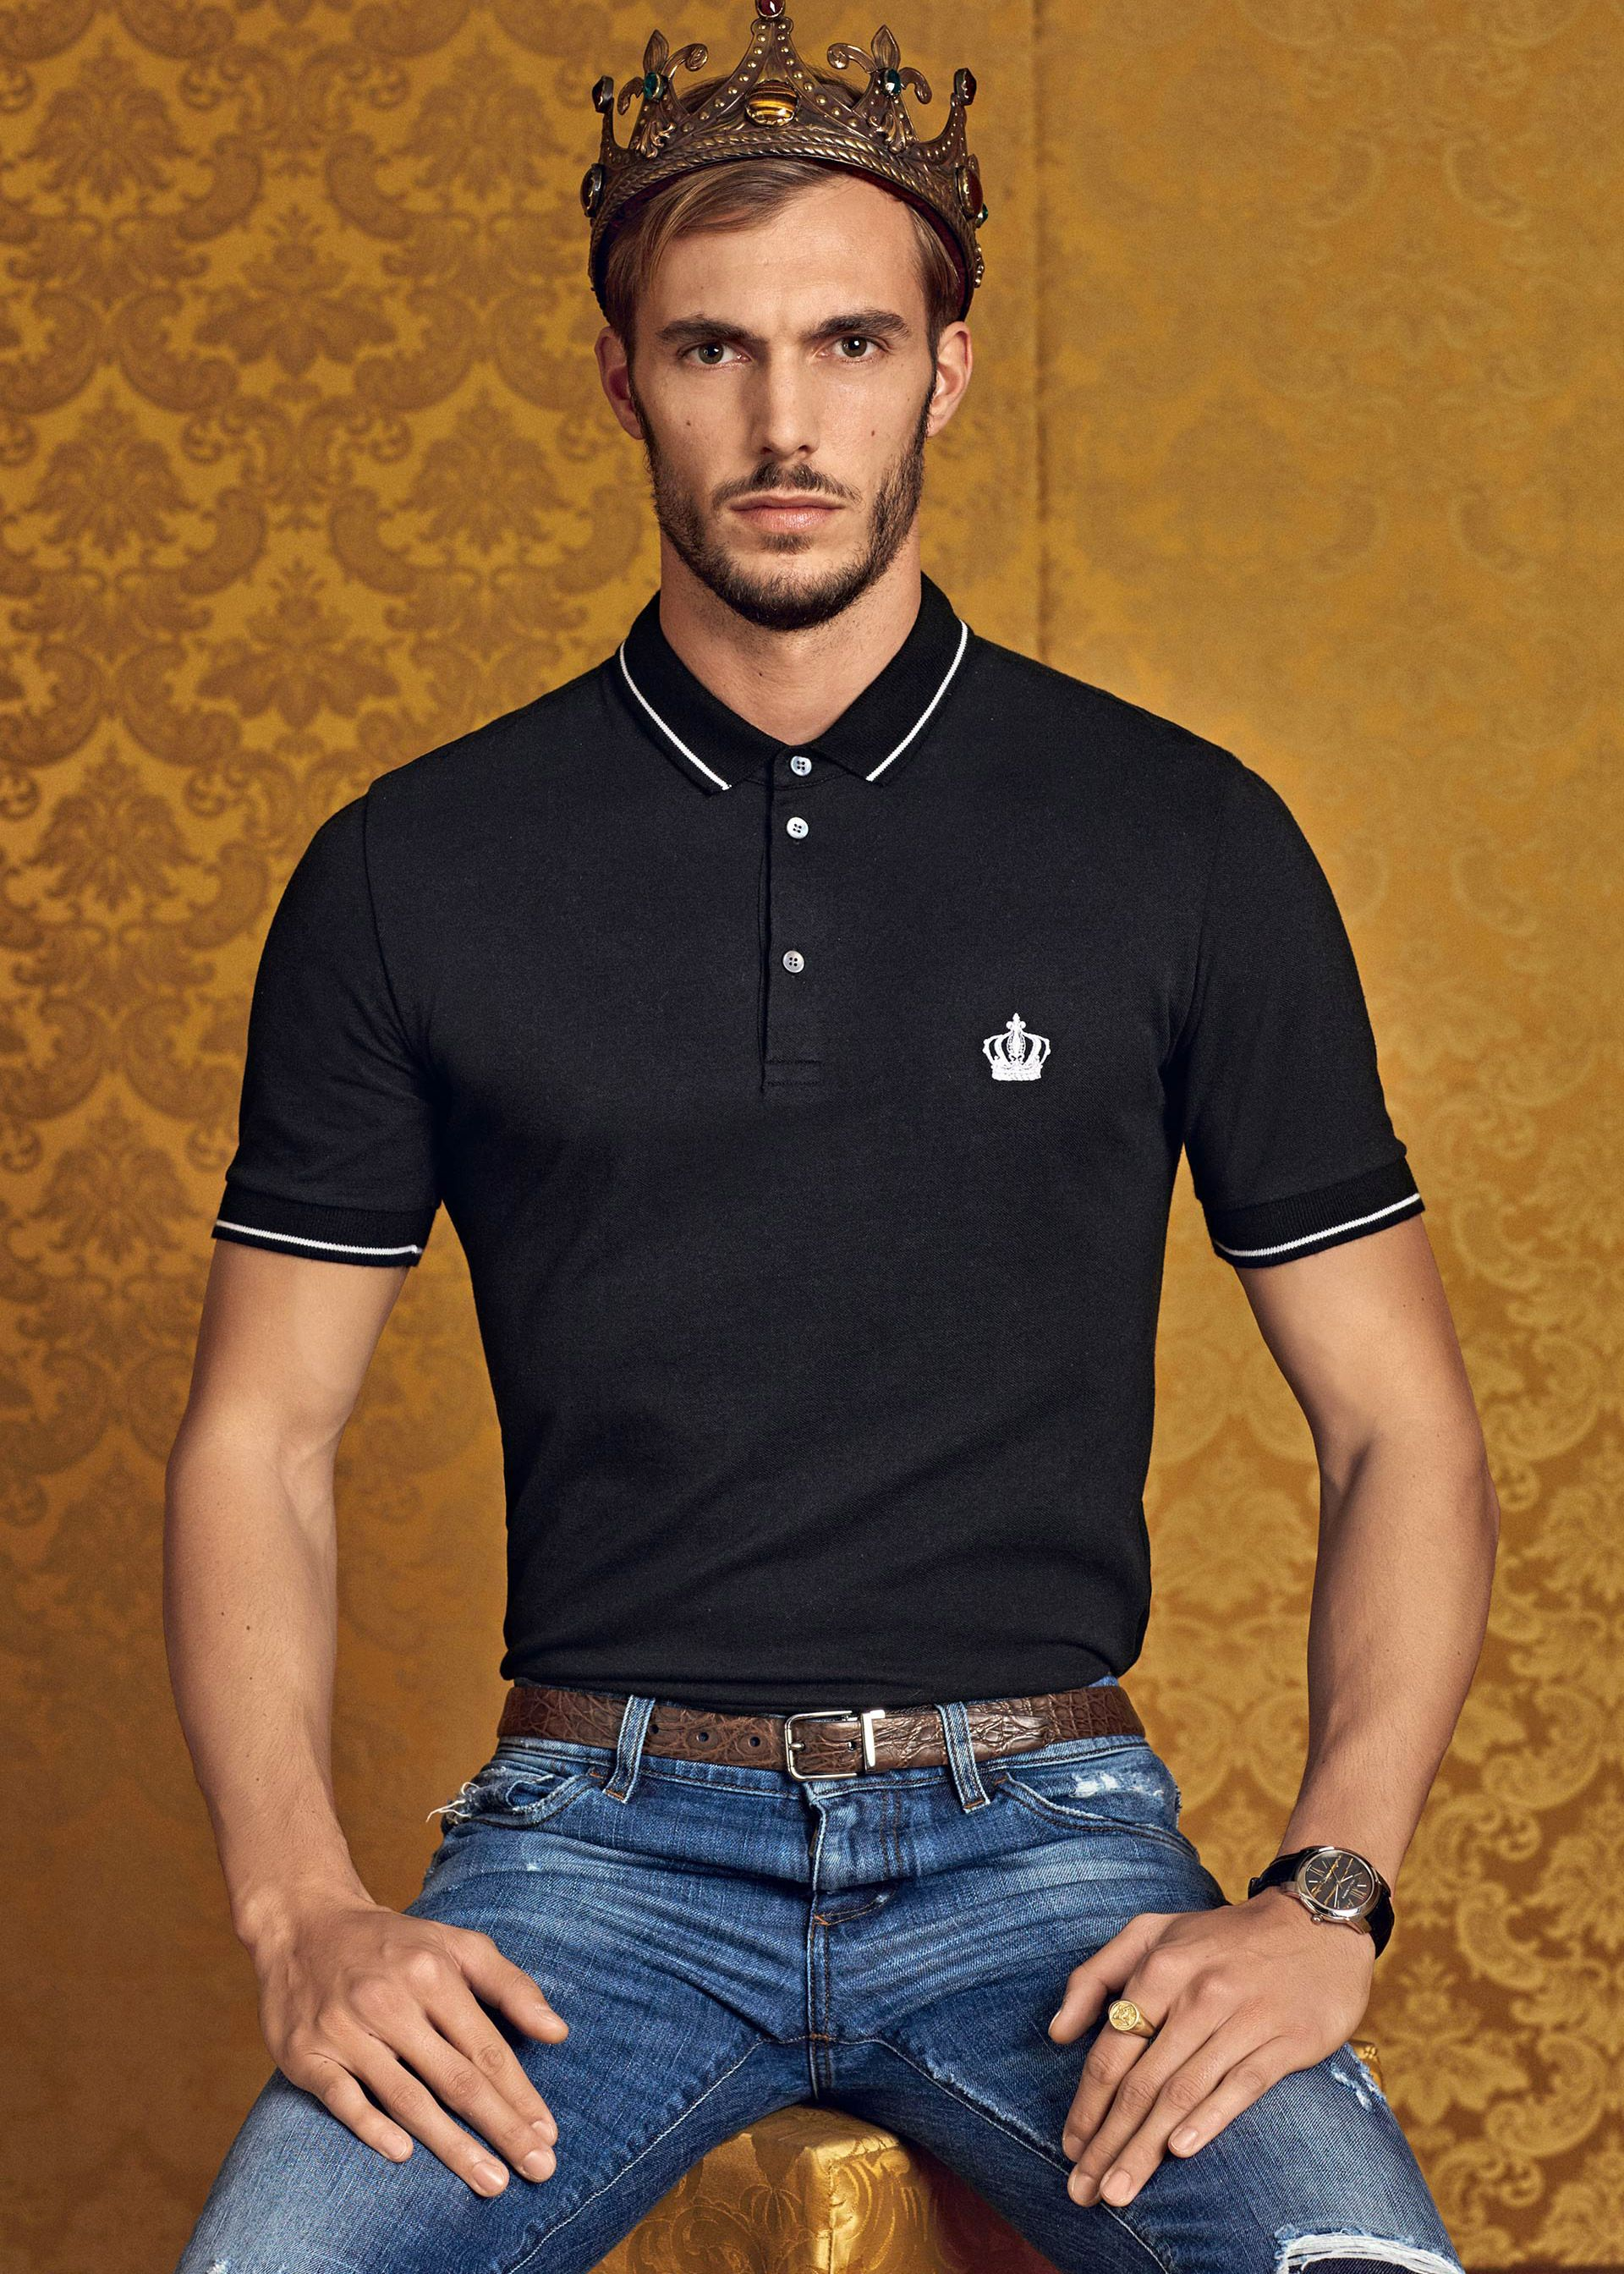 82c5a7d5cf9 Discover the new Dolce   Gabbana Men s Polo e Corona Collection for Fall  Winter 2016 2017 and get inspired.